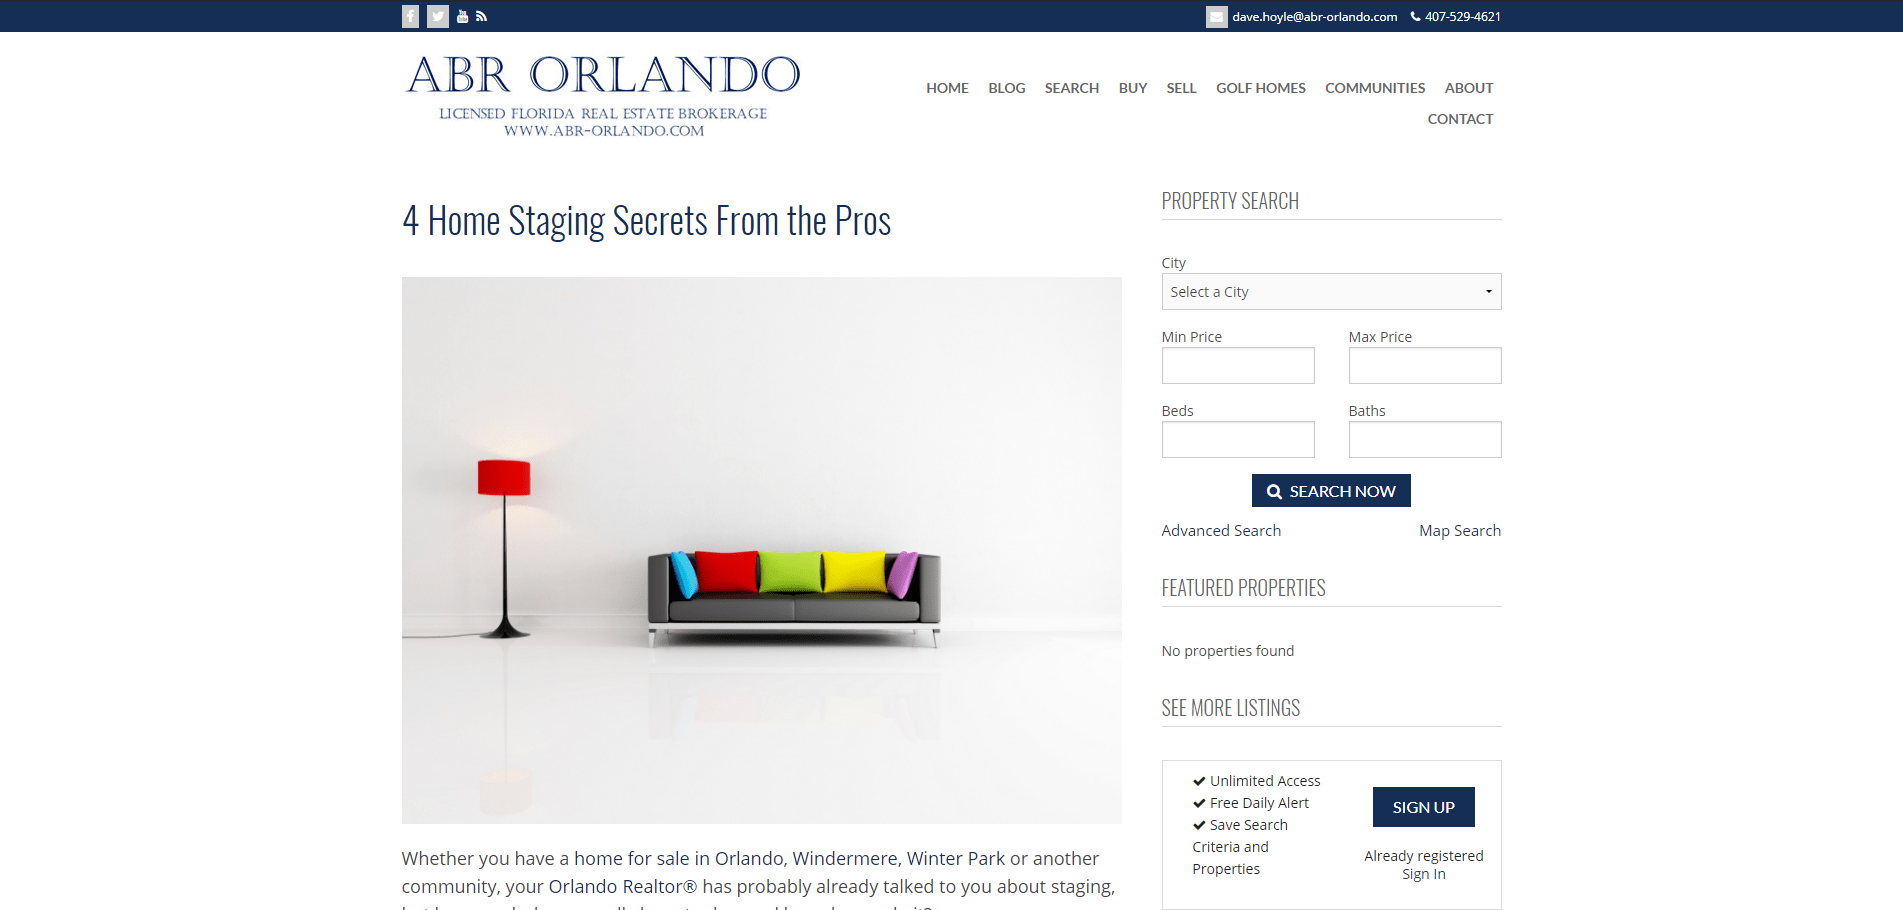 Blog Posts for an Orlando Real Estate Company